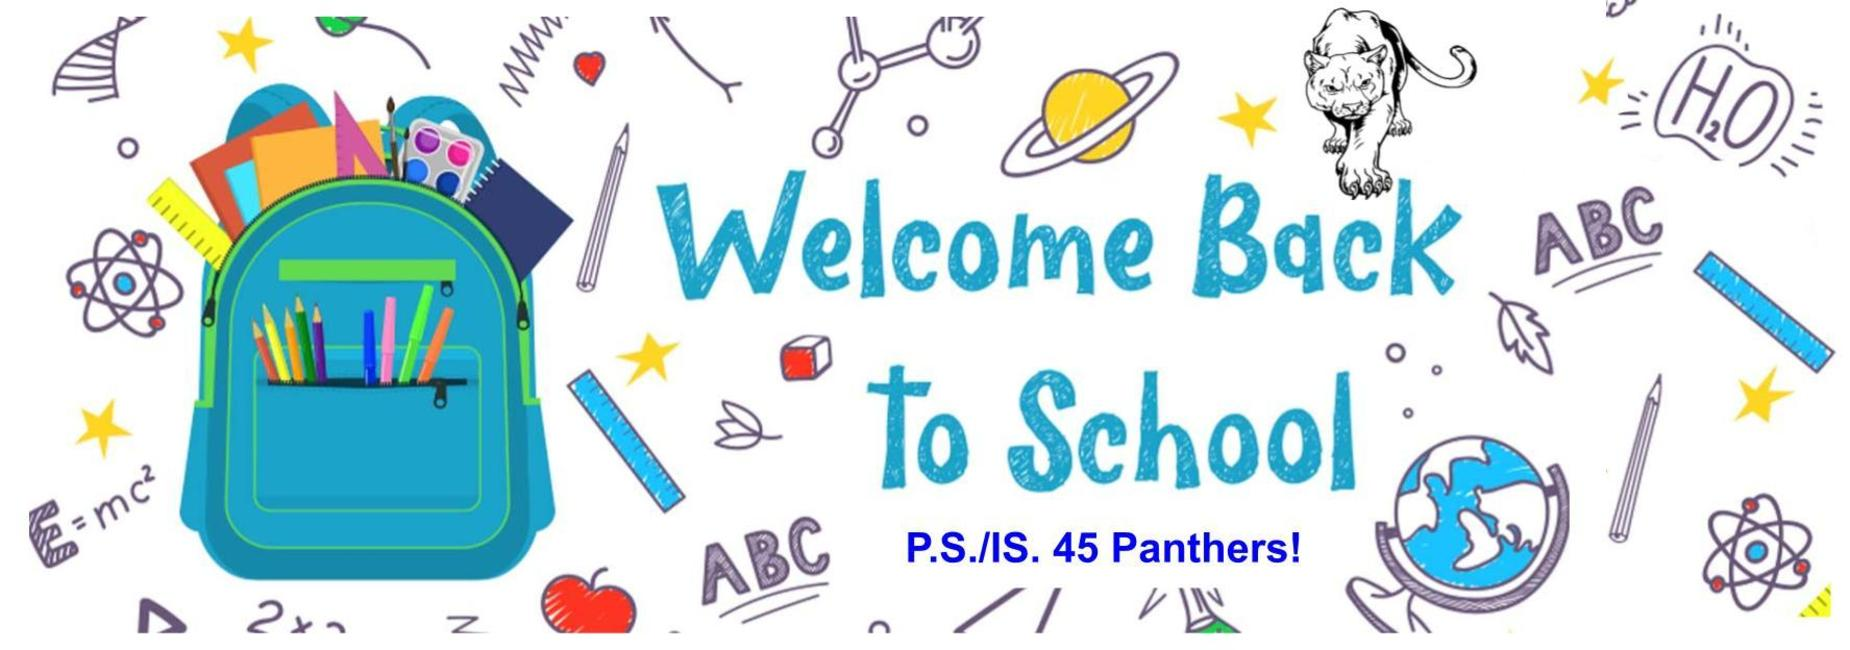 Welcome Back to School P.S./I.S. 45K Panthers!